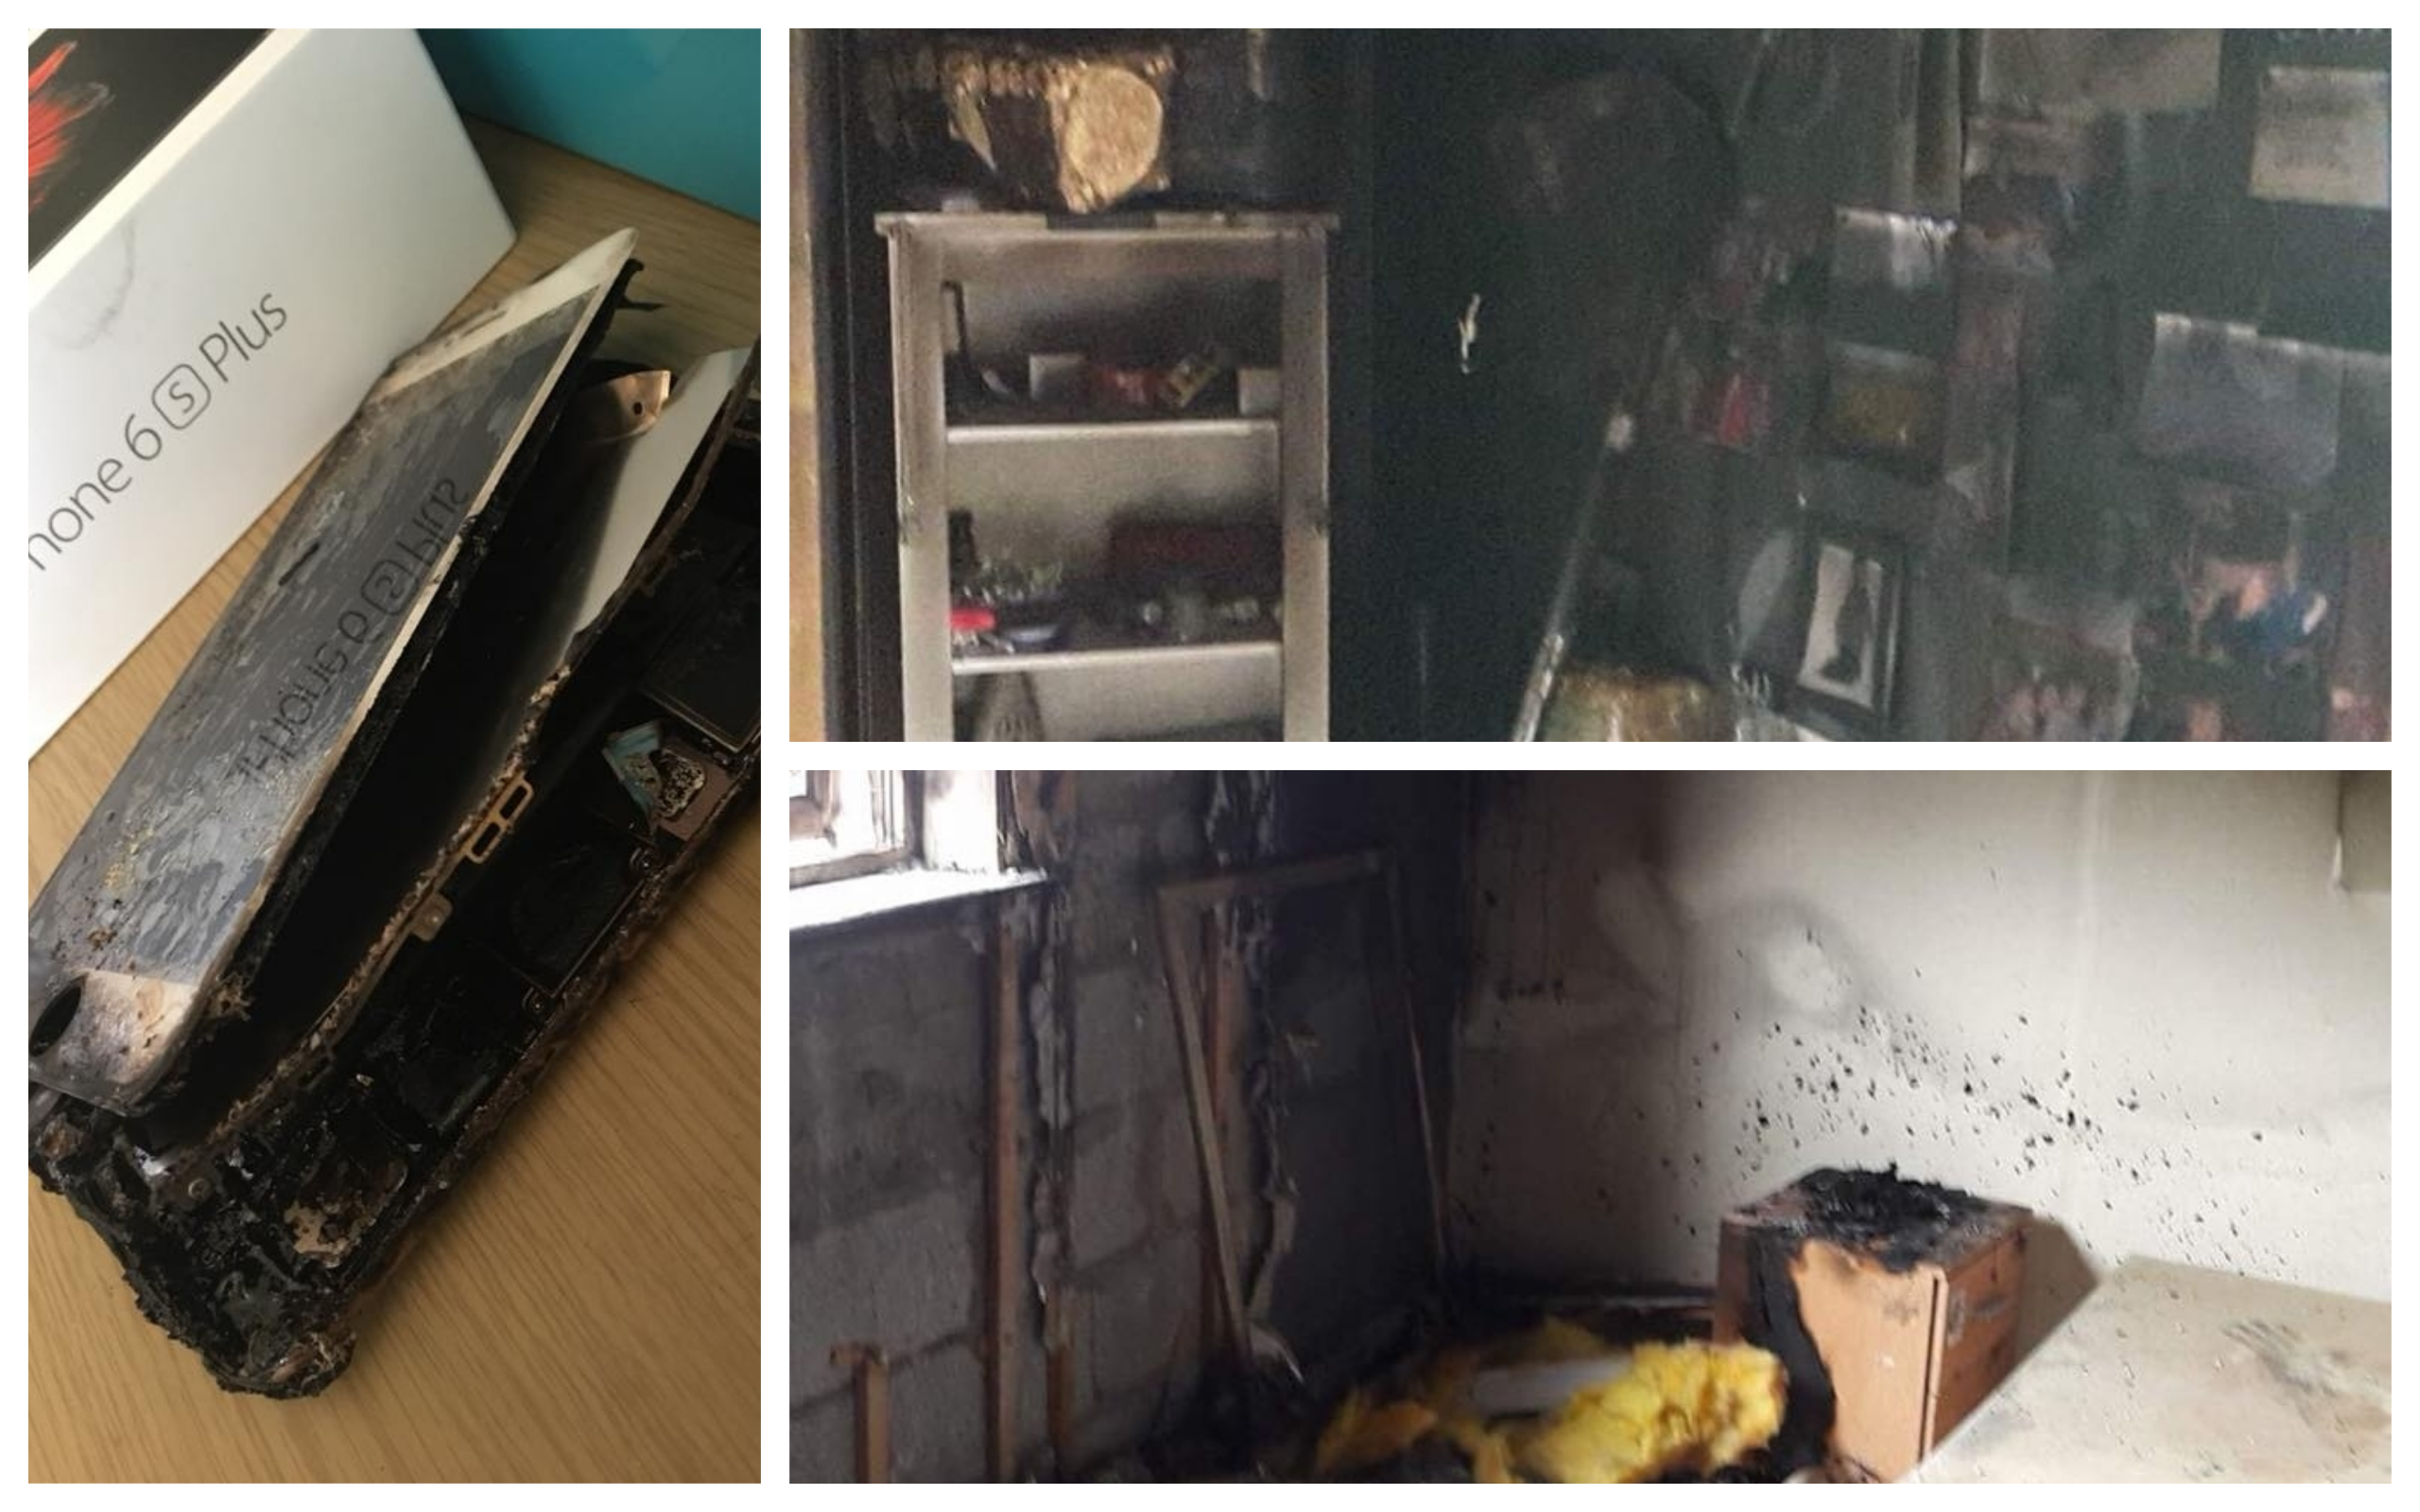 A fire started by an iPhone on charge caused Leah's bedroom to be destroyed.